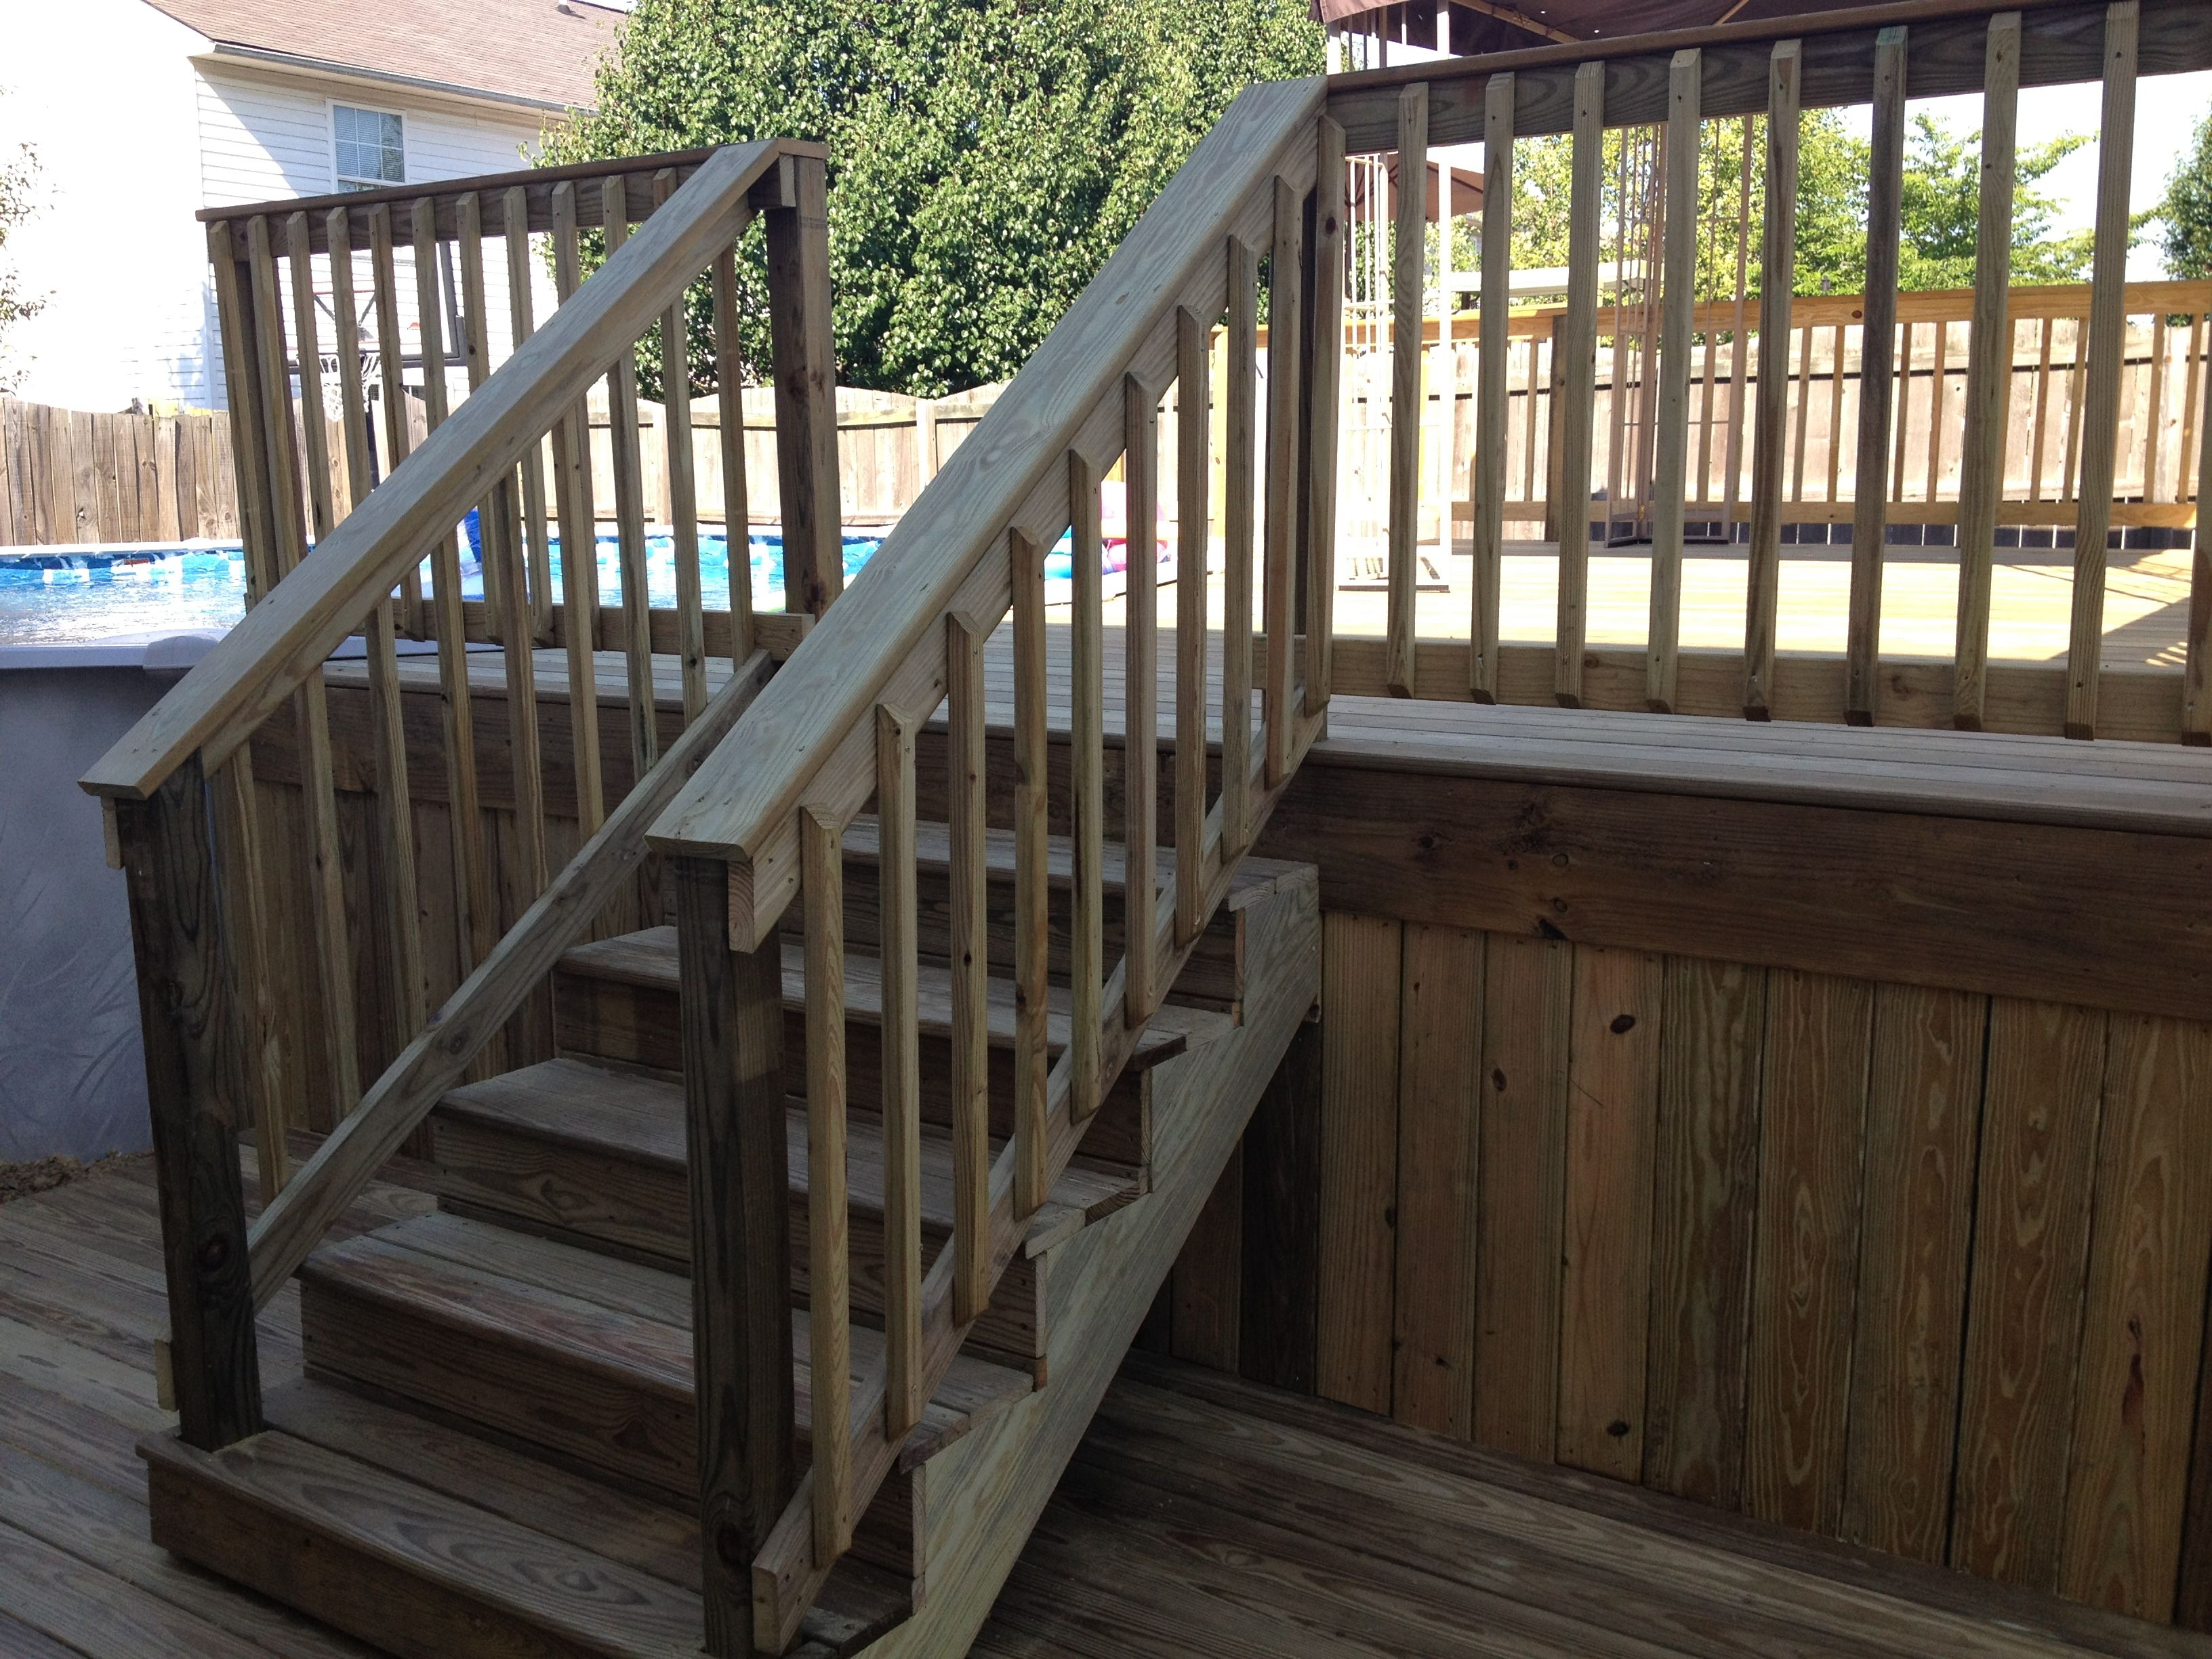 Two Level Pool Deck Wood Decks Pinterest